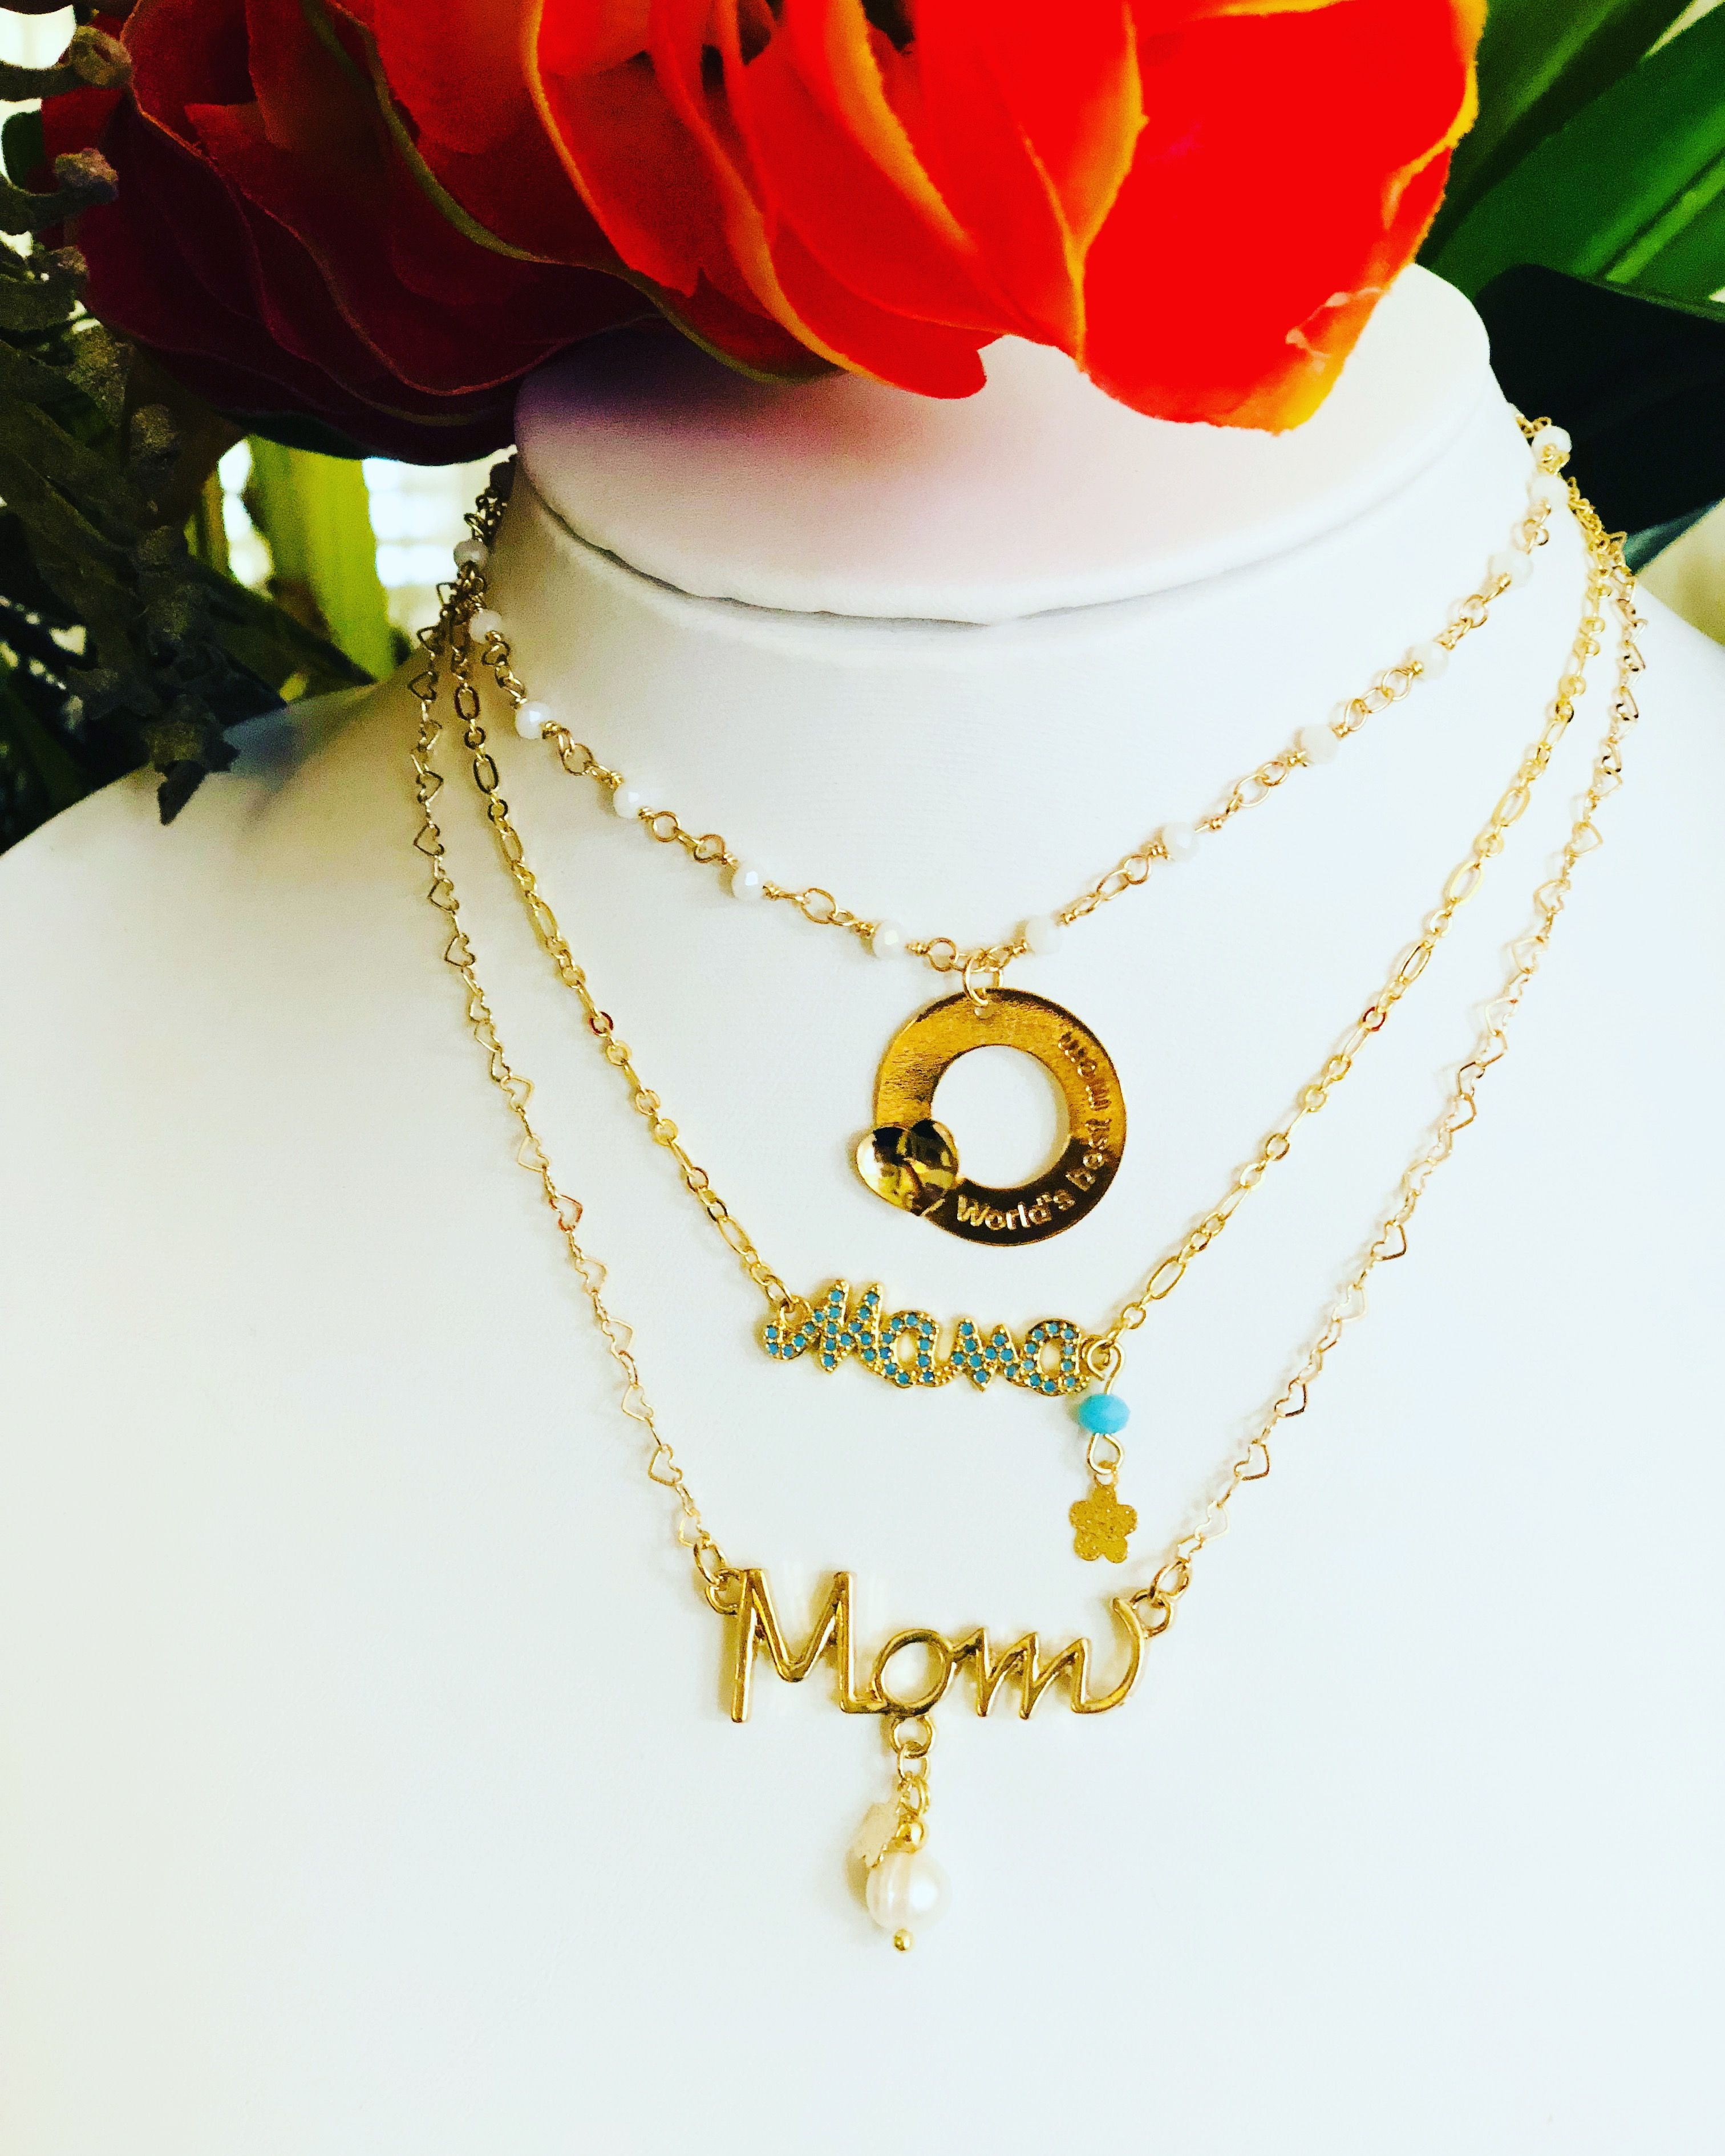 83f57d7d6b2 Chokers for mom, beautiful gift for Mother's Day. By LuisanaMelet- Jewelry  Facebook / Instagram meletluisana@gmail.com